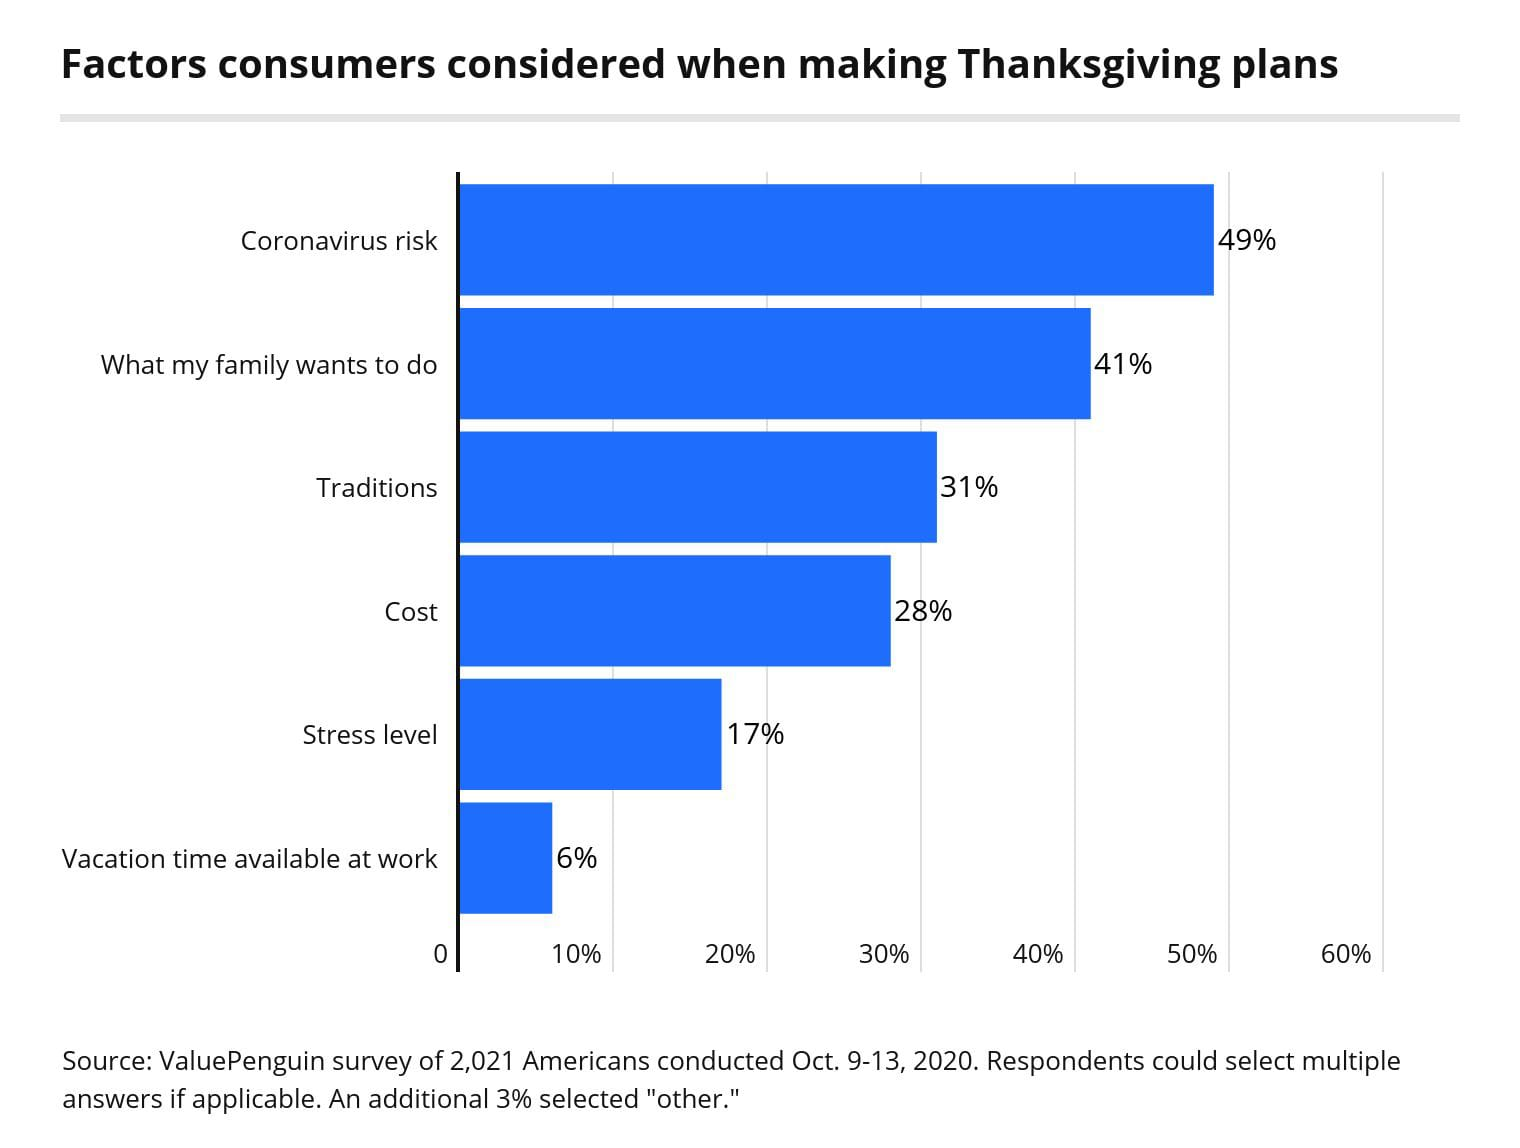 Factors Consumers Consider When Making Thanksgiving Plans